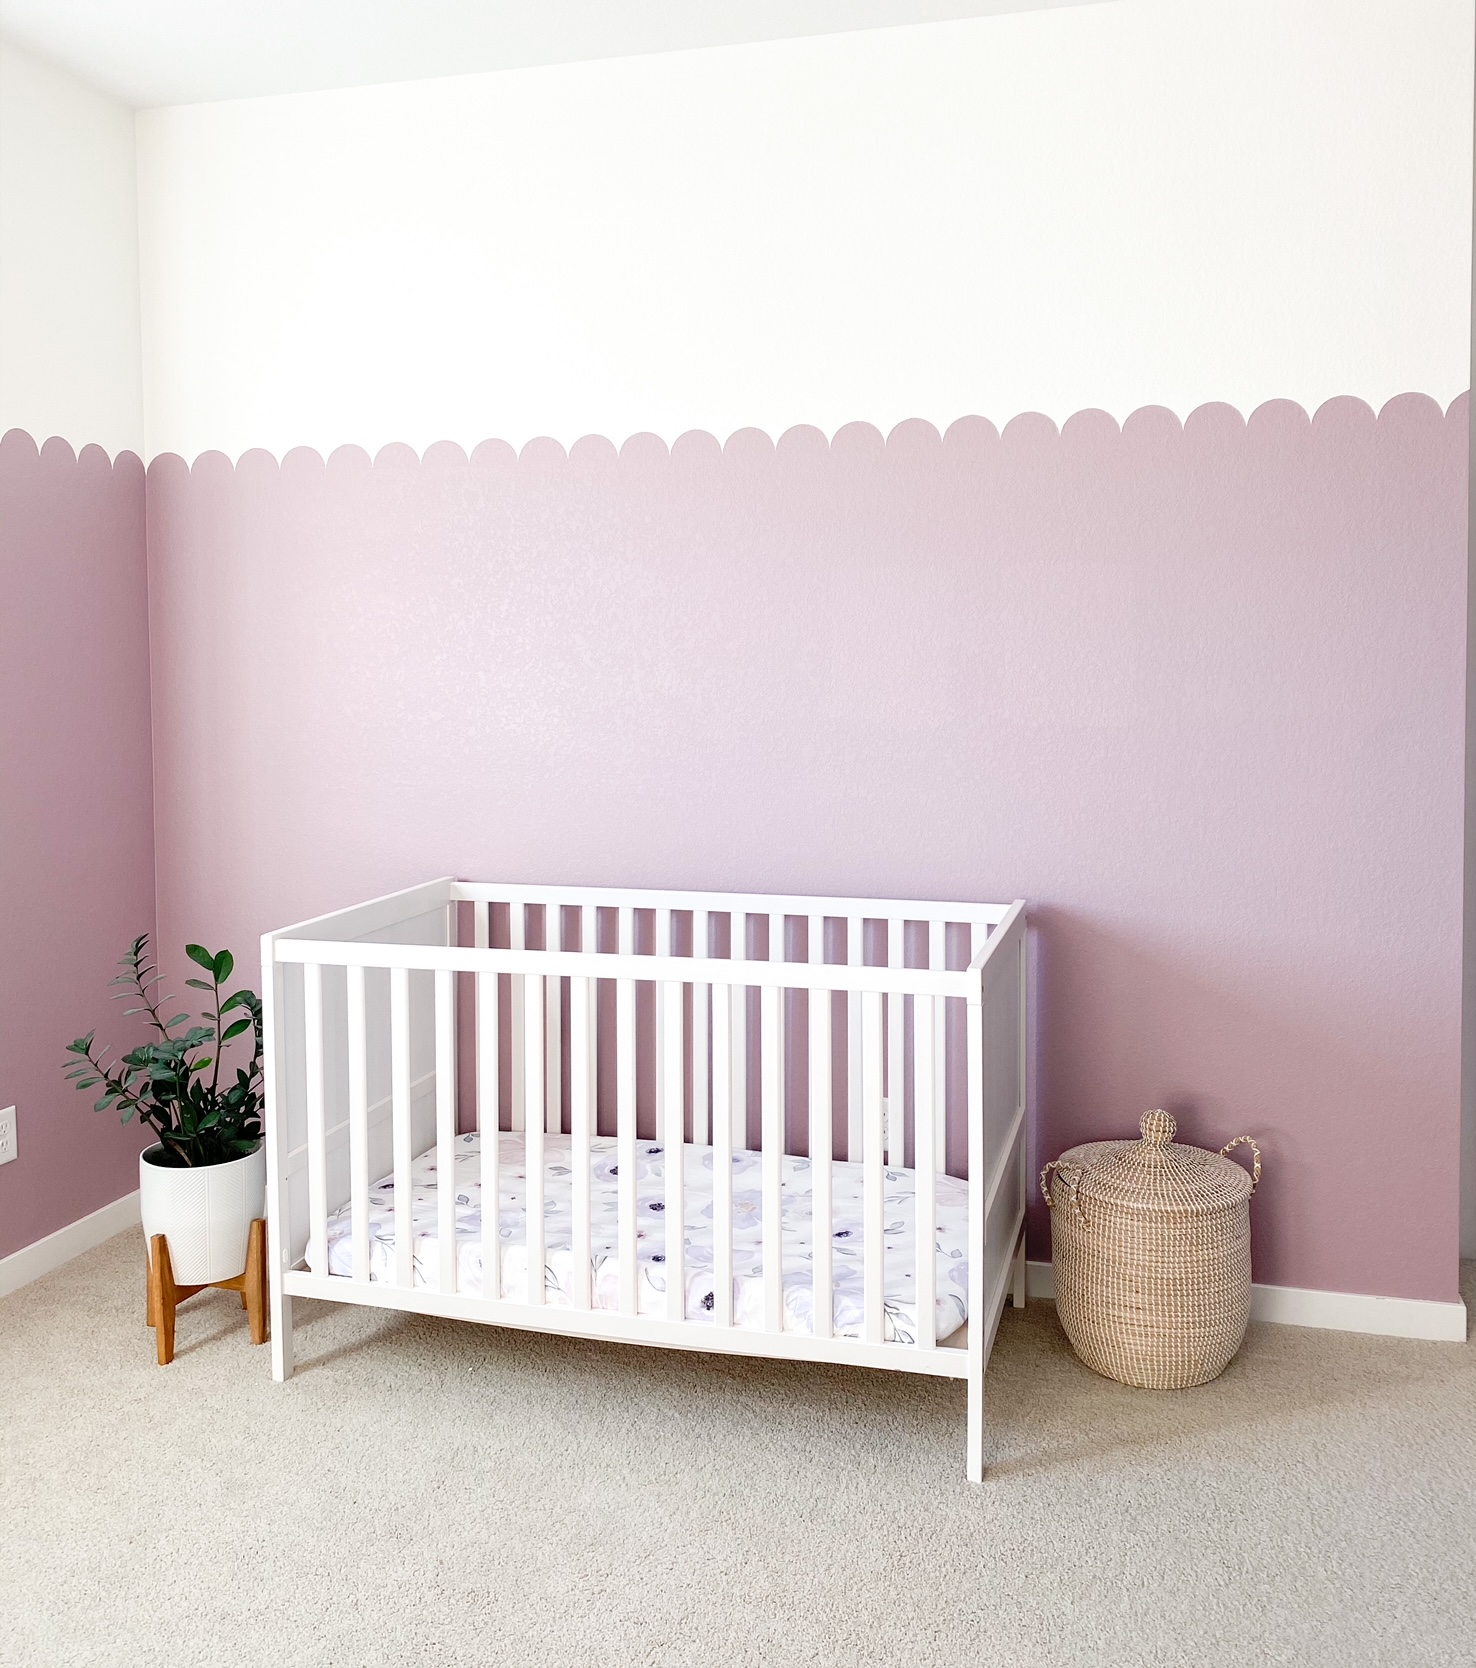 nursery with white crib and purple walls